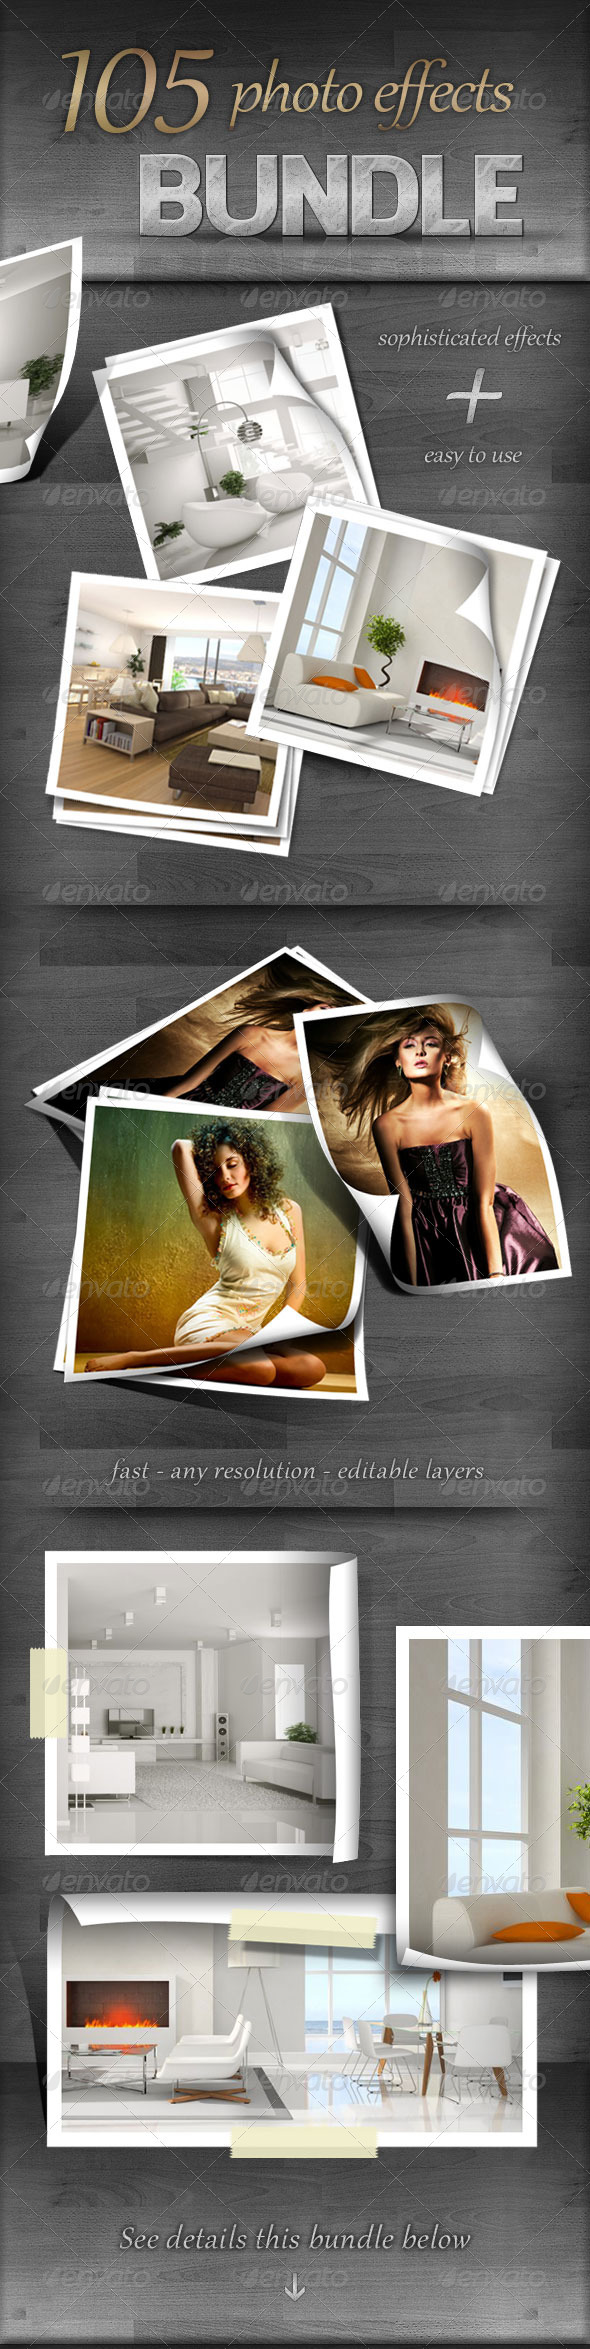 105 Photo Effects - Bundle - GraphicRiver Item for Sale